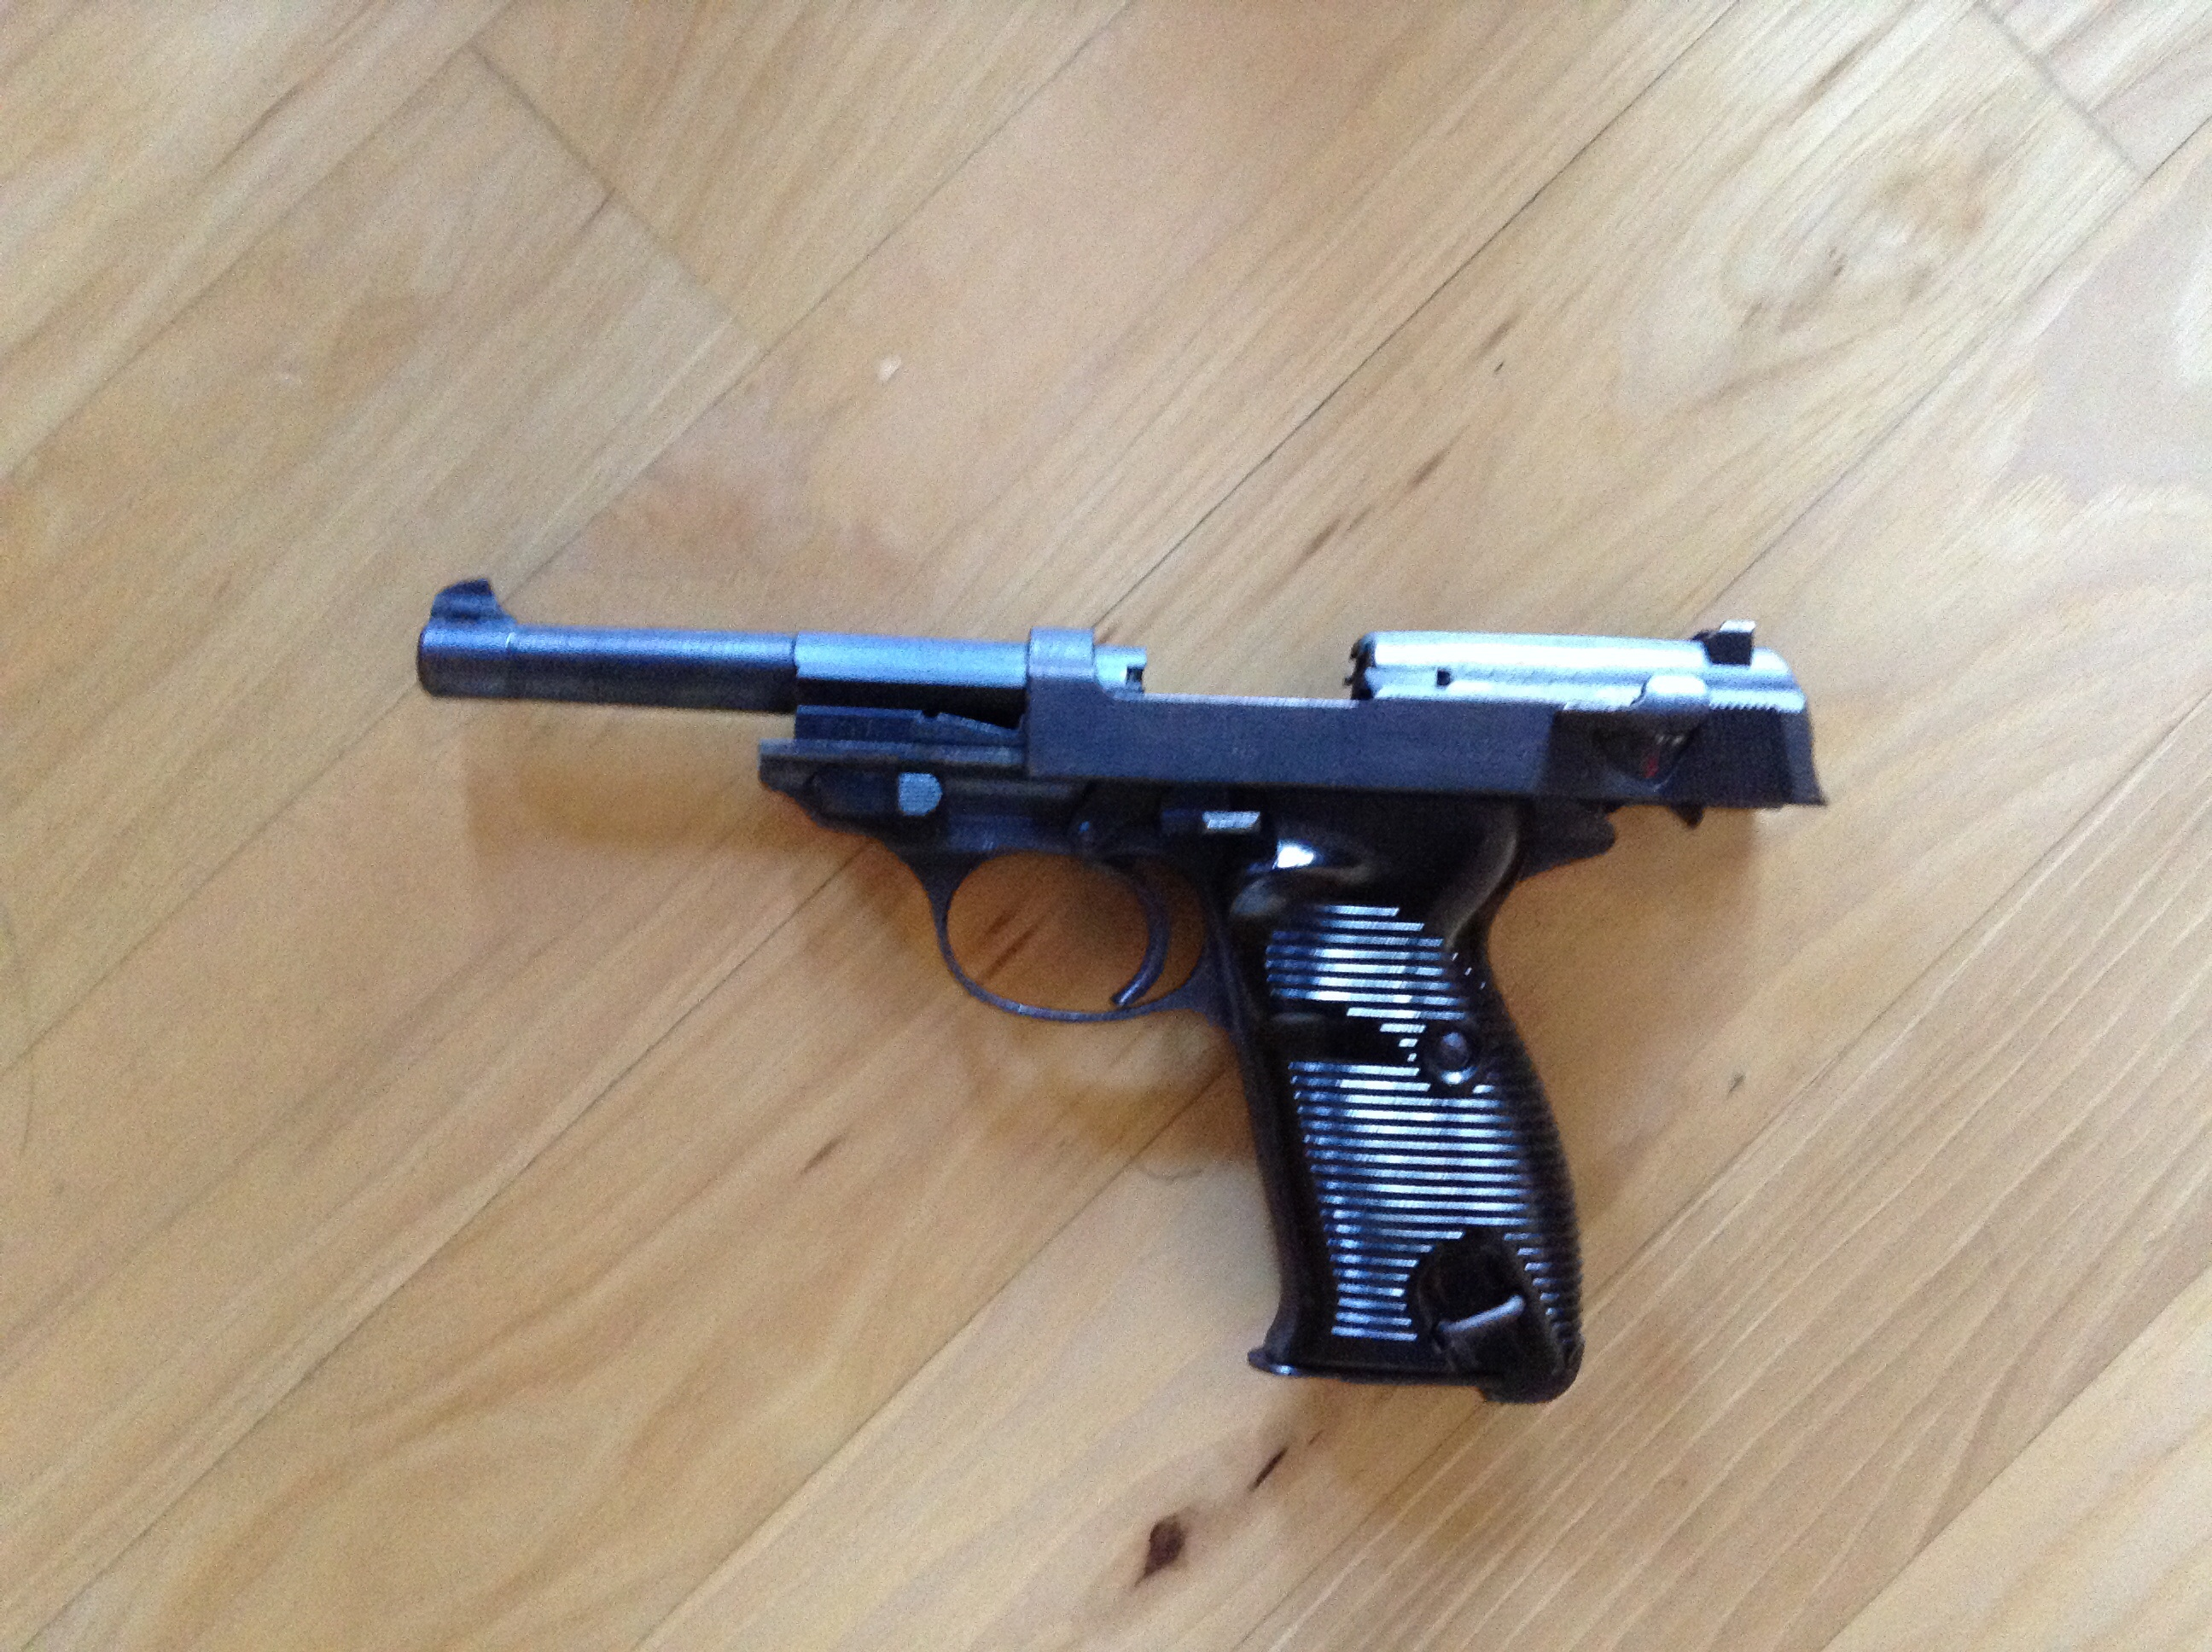 Name this pistol please.-image.jpg